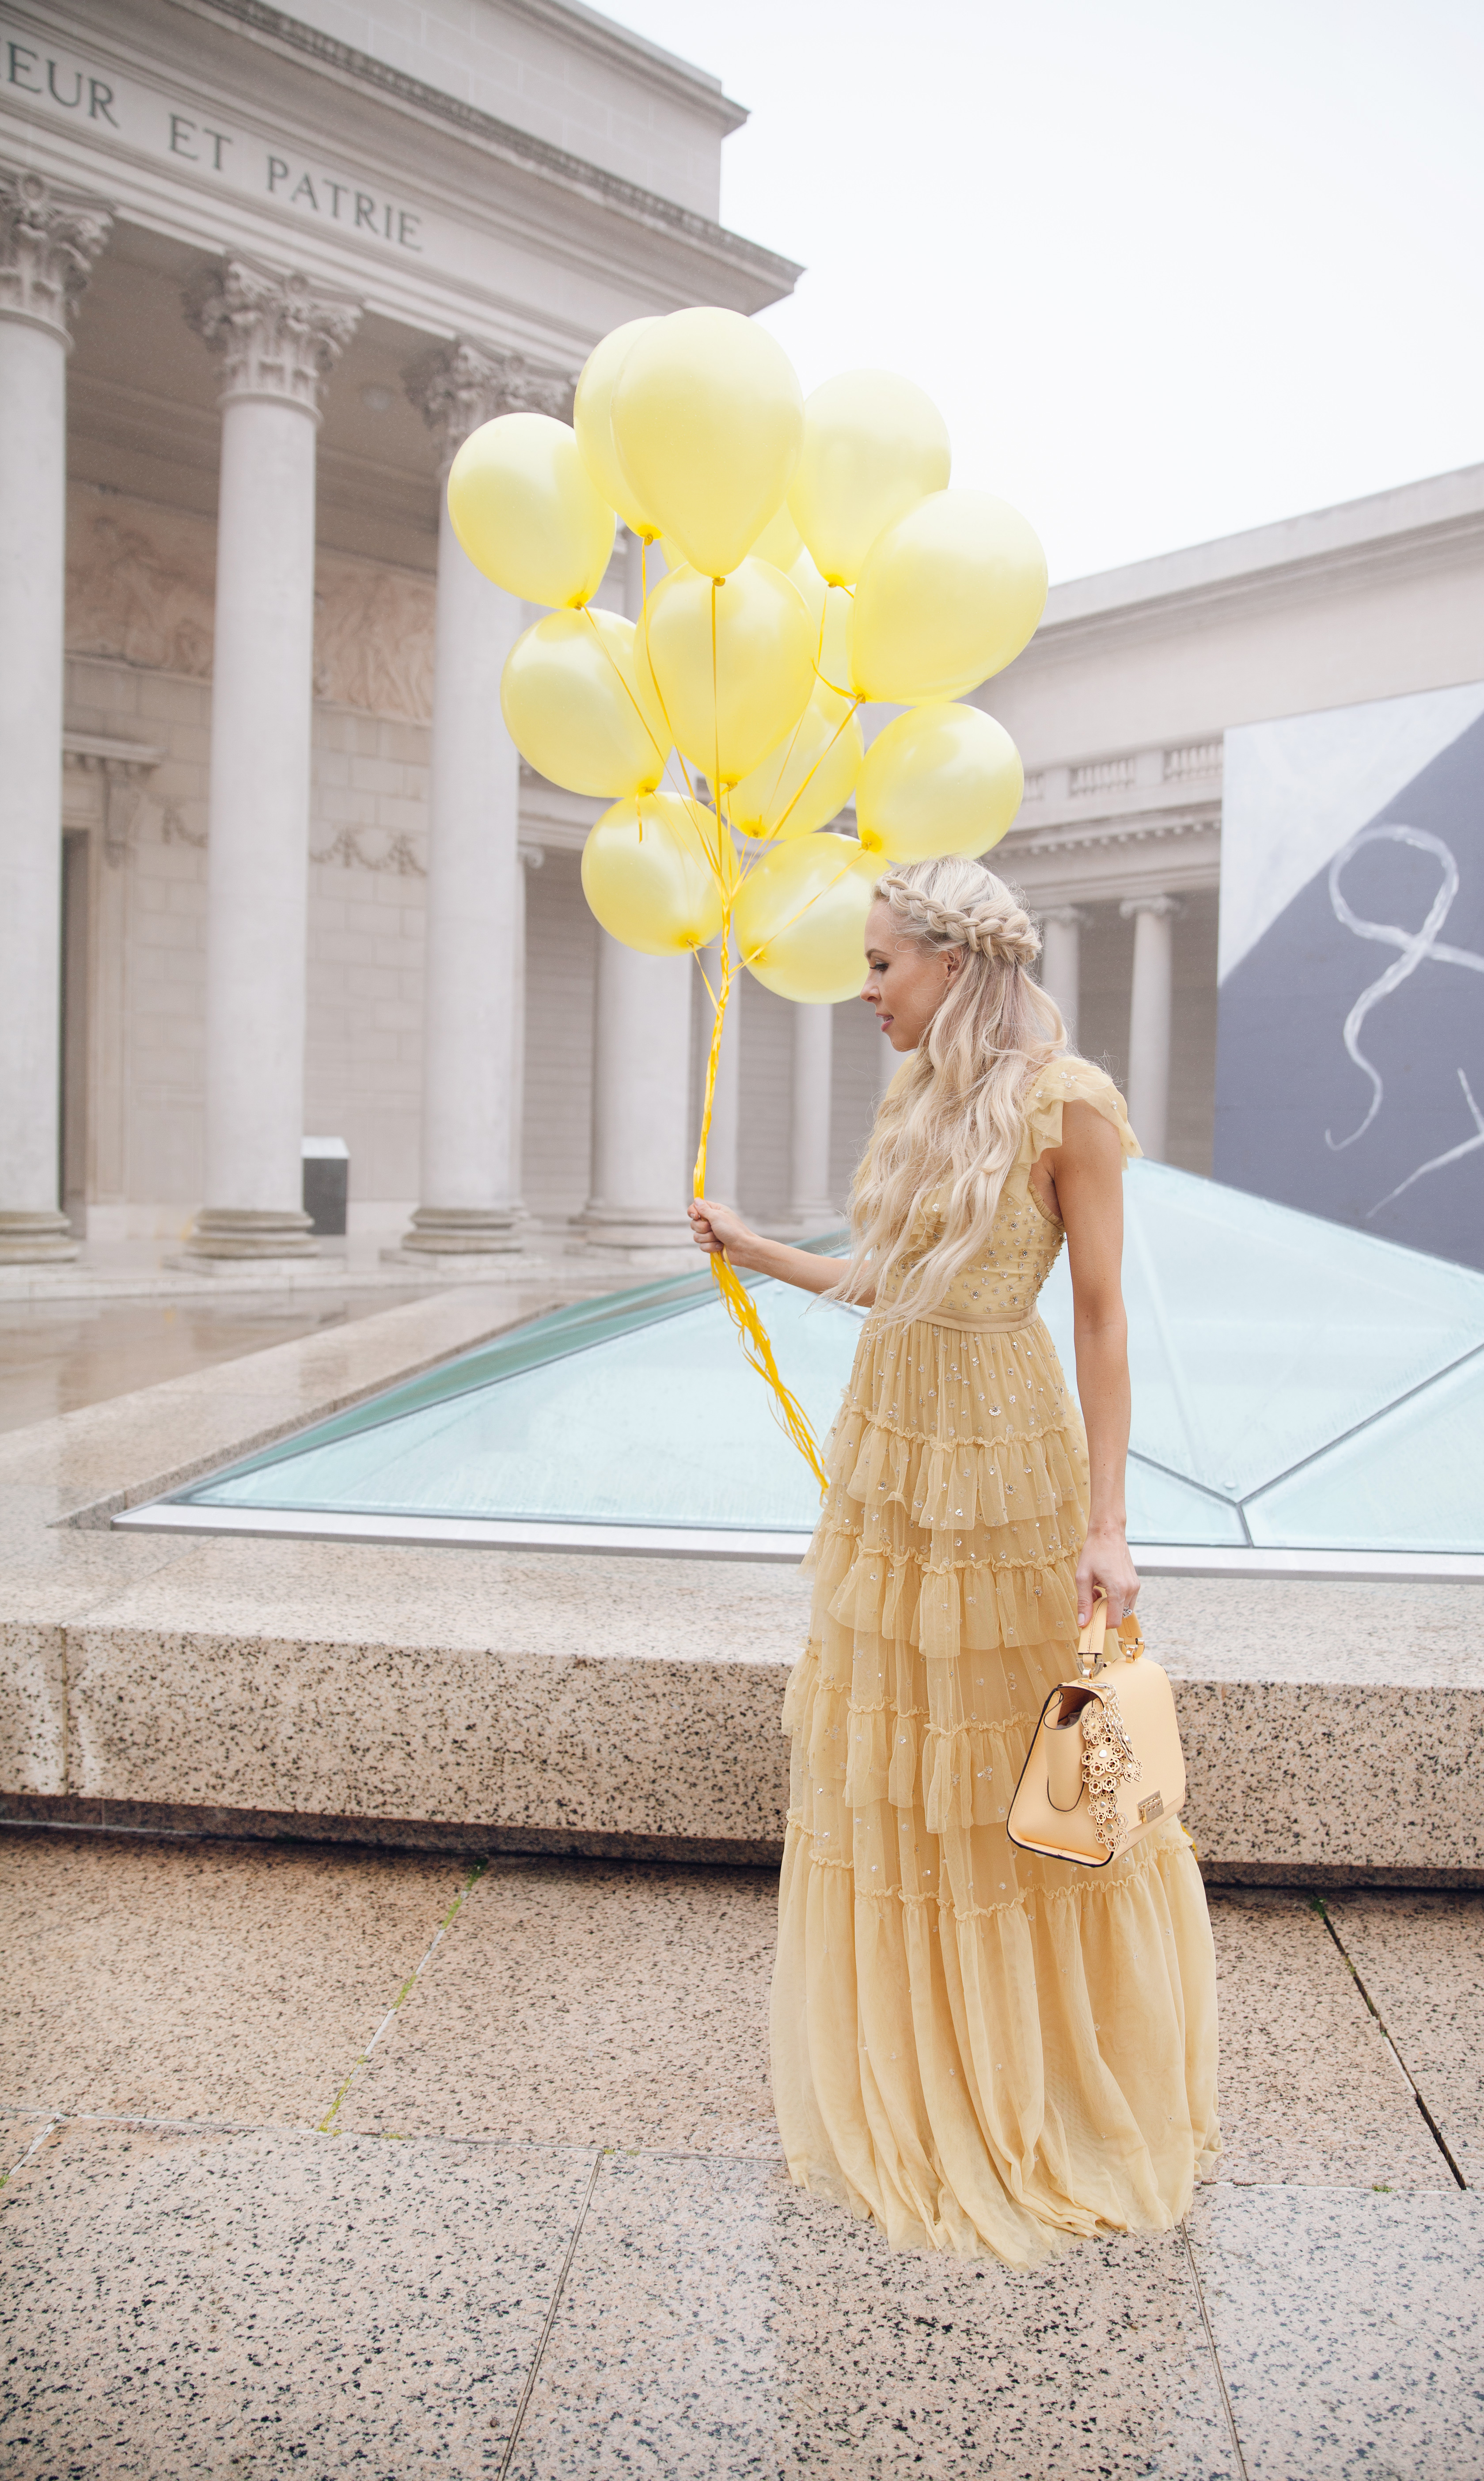 how to eBay, my style journey, needle & thread dress maxi yellow embroidered | Top San Francisco fashion blog, Lombard and Fifth, features her tips on How to Ebay effectively: image of a blonde woman wearing a stunning maxi dress found on Ebay